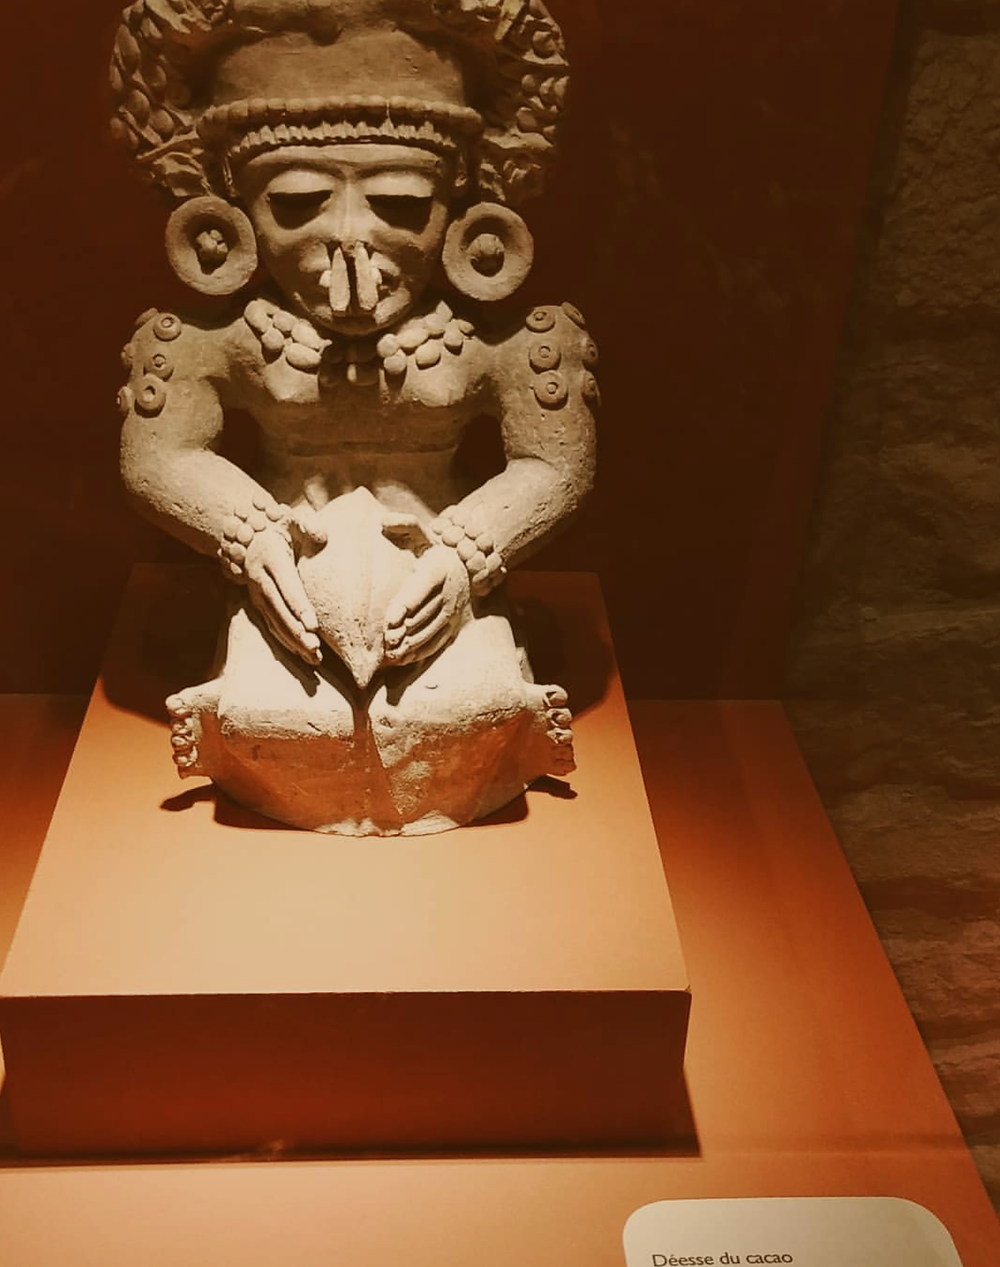 On a recent trip to Paris over the Christmas holiday, I visited the Chocolate Museum and learned about the history of chocolate. Pictured here is the Aztec Goddess of Cocoa or Déesse du Cacao